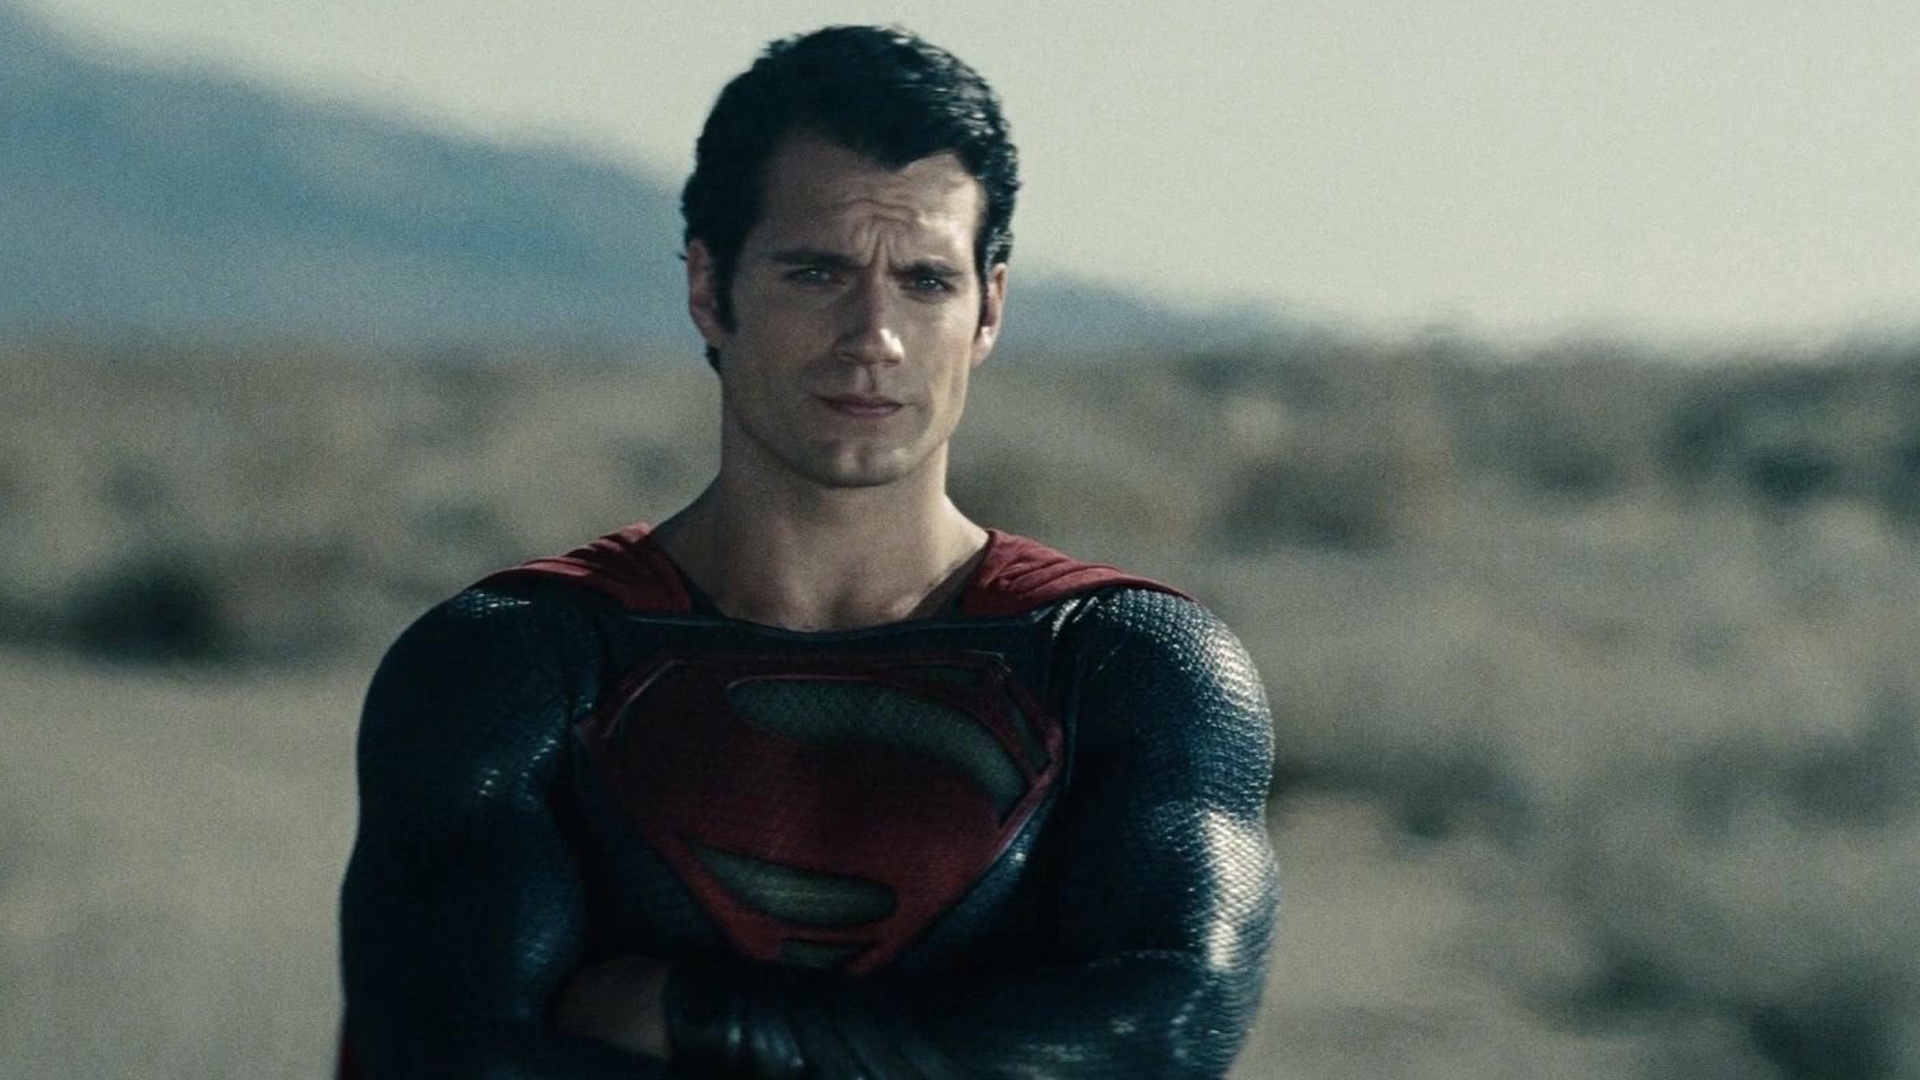 director-matthew-vaughn-shares-details-on-what-his-superman-movie-would-have-been-social.jpg